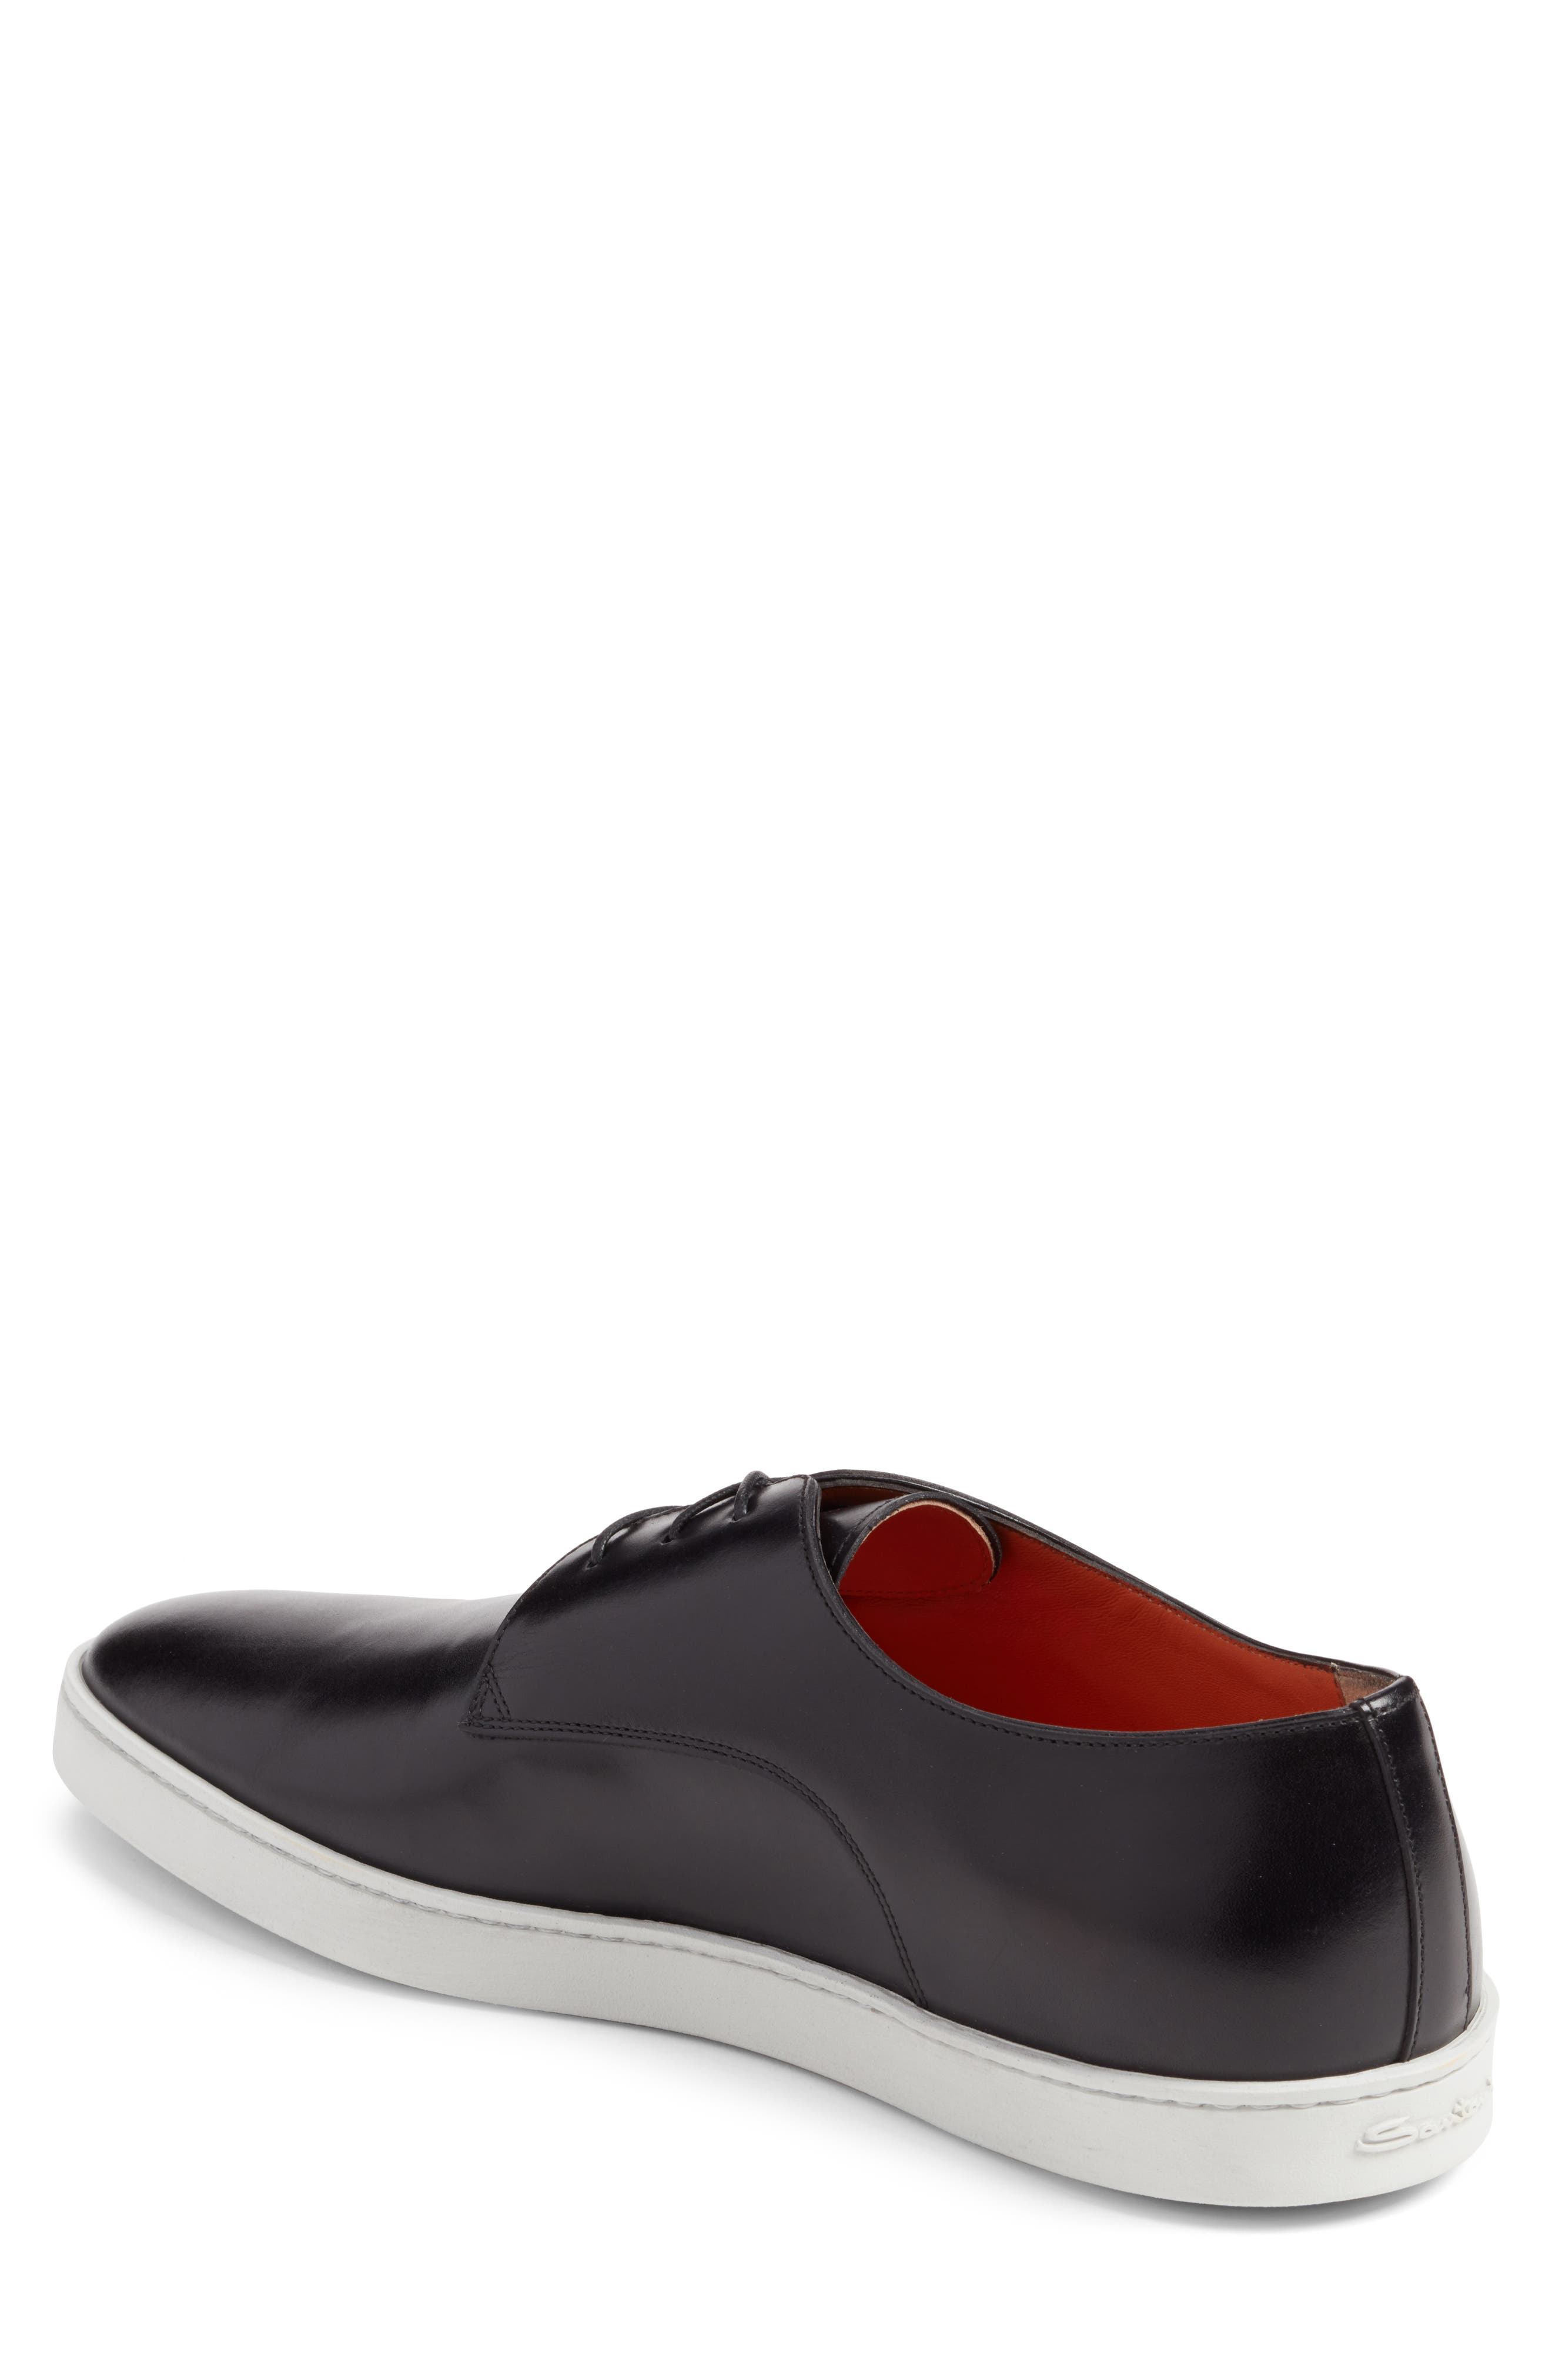 Alternate Image 2  - Santoni Doyle Sneaker (Men)